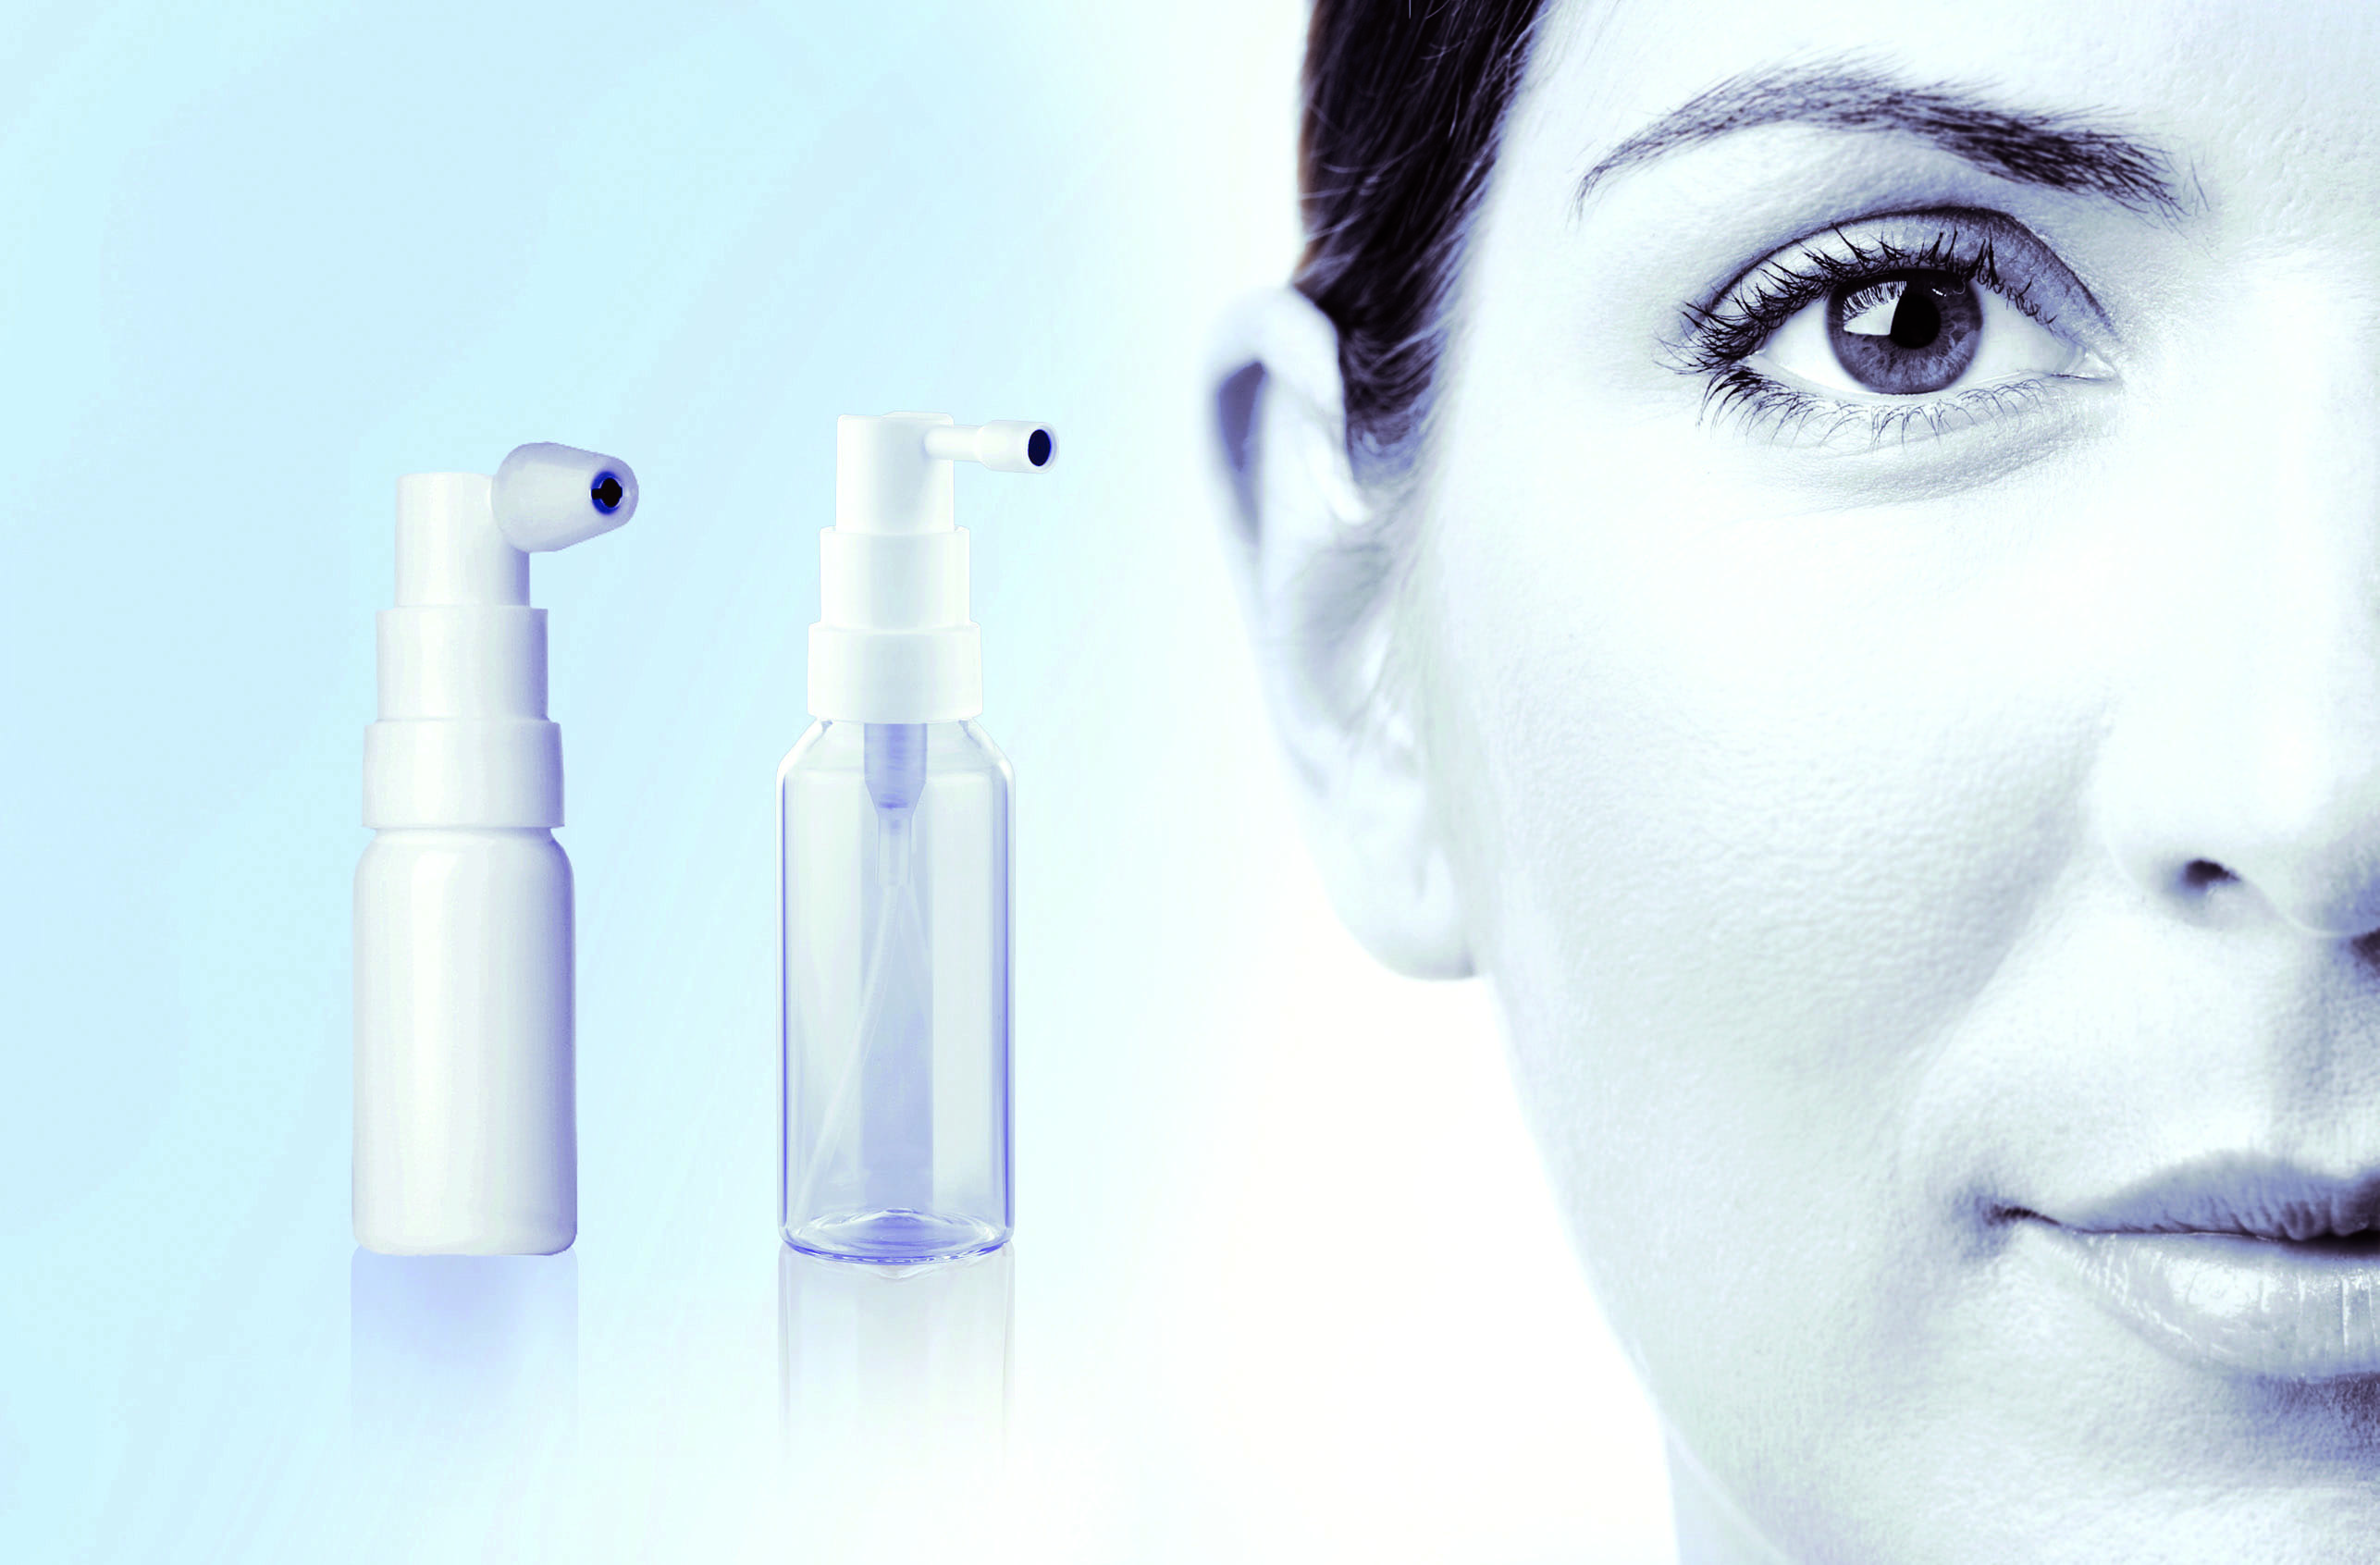 Aero Pump Buccal and Otological pumps shown side by side, next to a woman's face.